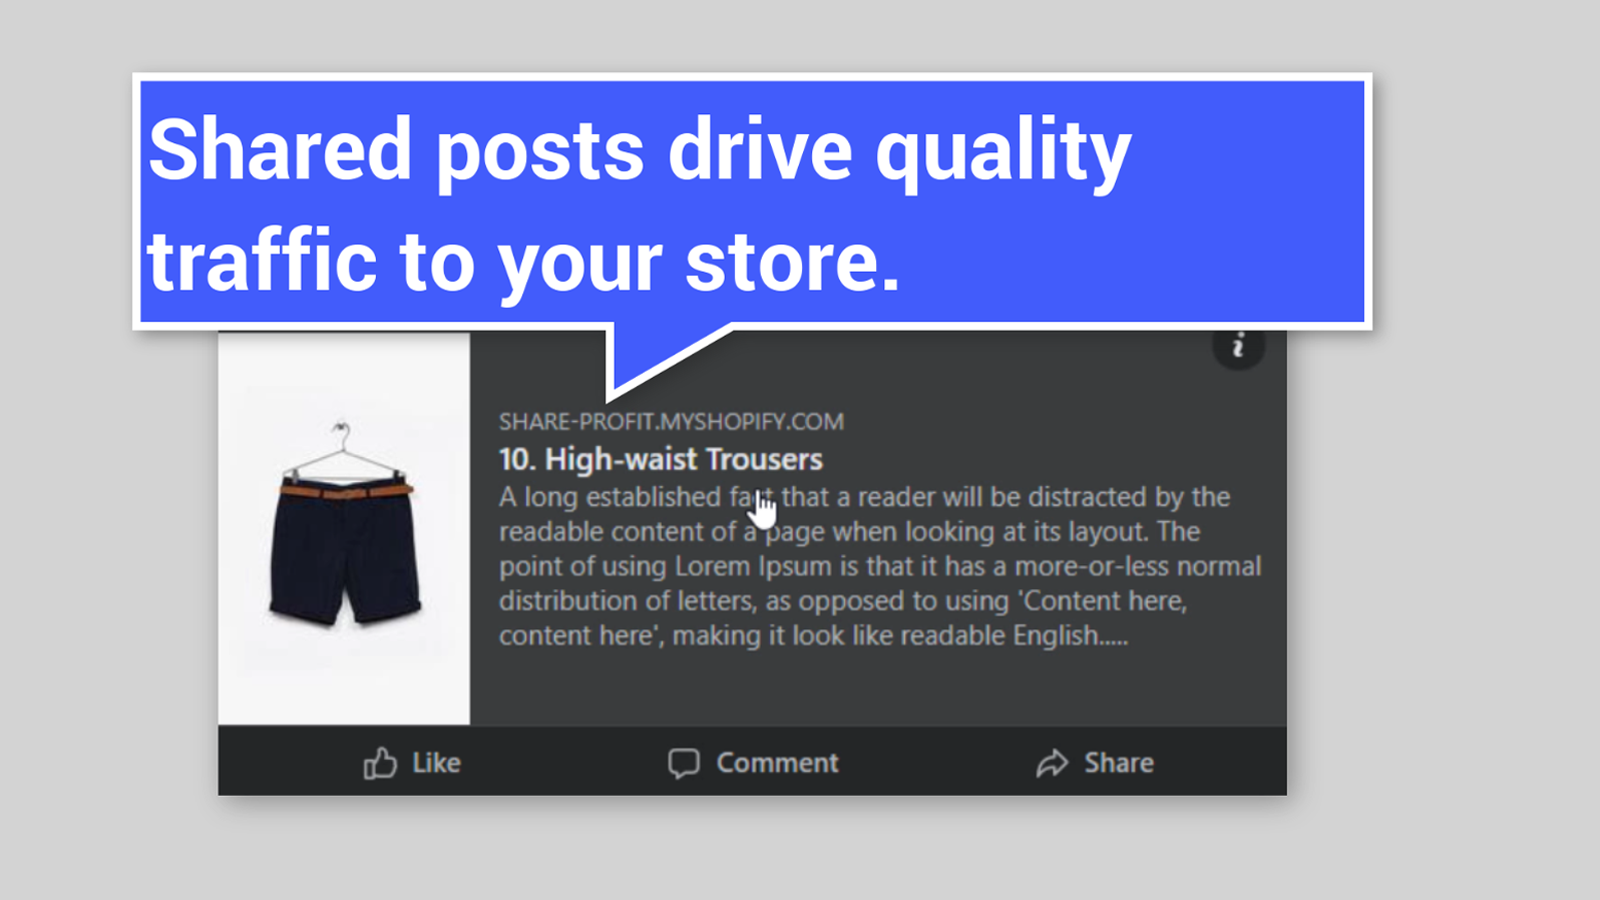 Shared posts drive quality traffic to your store.